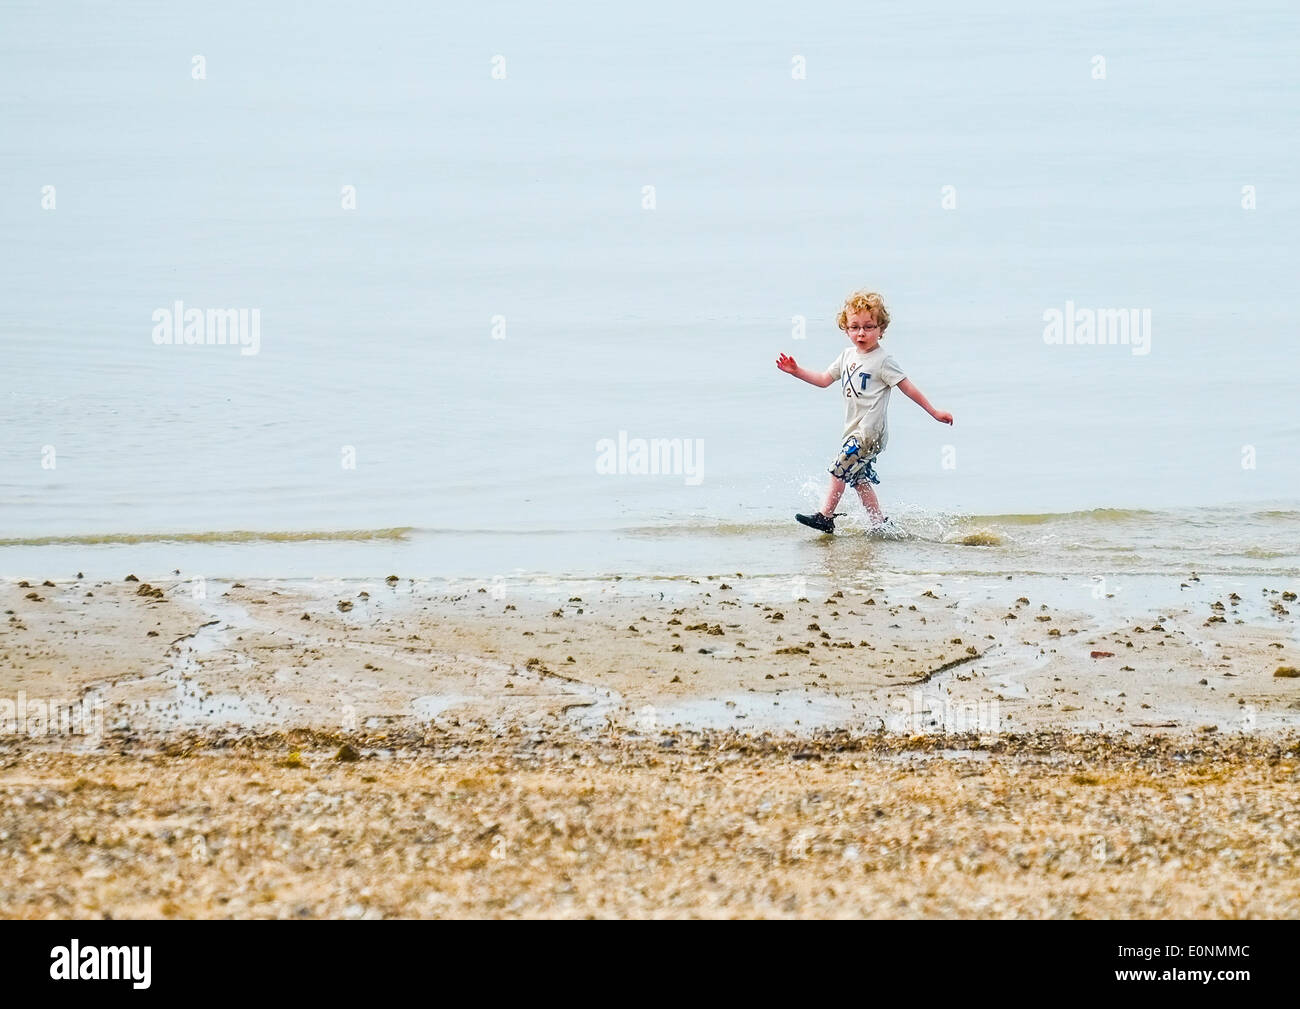 Southend on Sea, Essex, UK. 17th May, 2014.  A young lad enjoys his run along the Jubilee Beach in Southend on Sea as the temperature starts to build into what will prove to be the hottest day of the year so far.  Photographer: Gordon Scammell/Alamy Live News - Stock Image